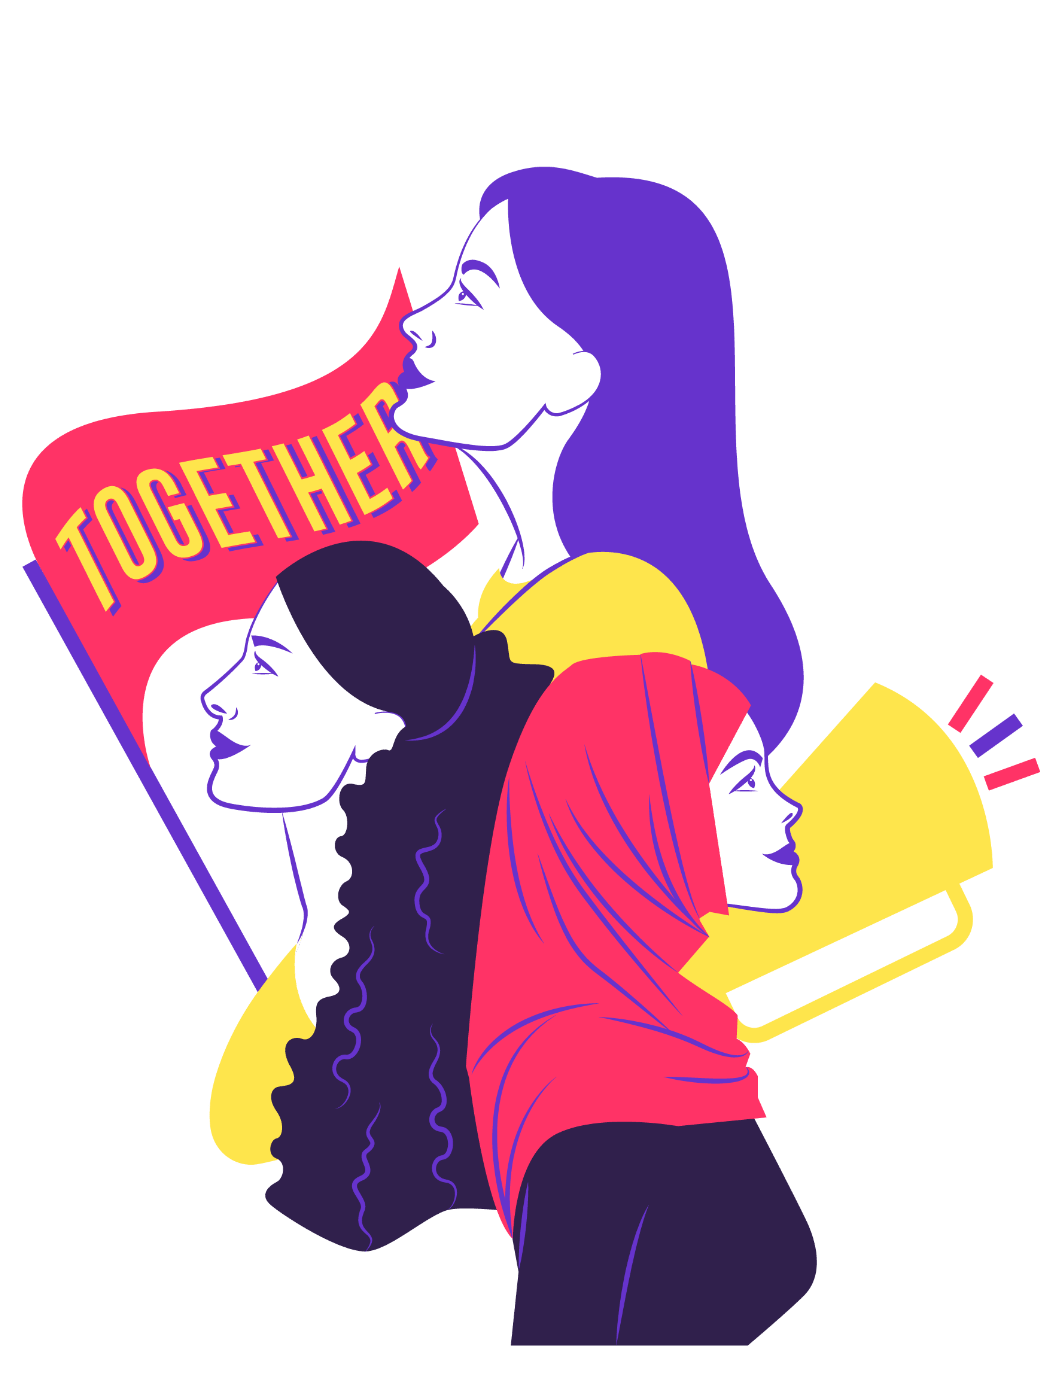 Illustration of women activists